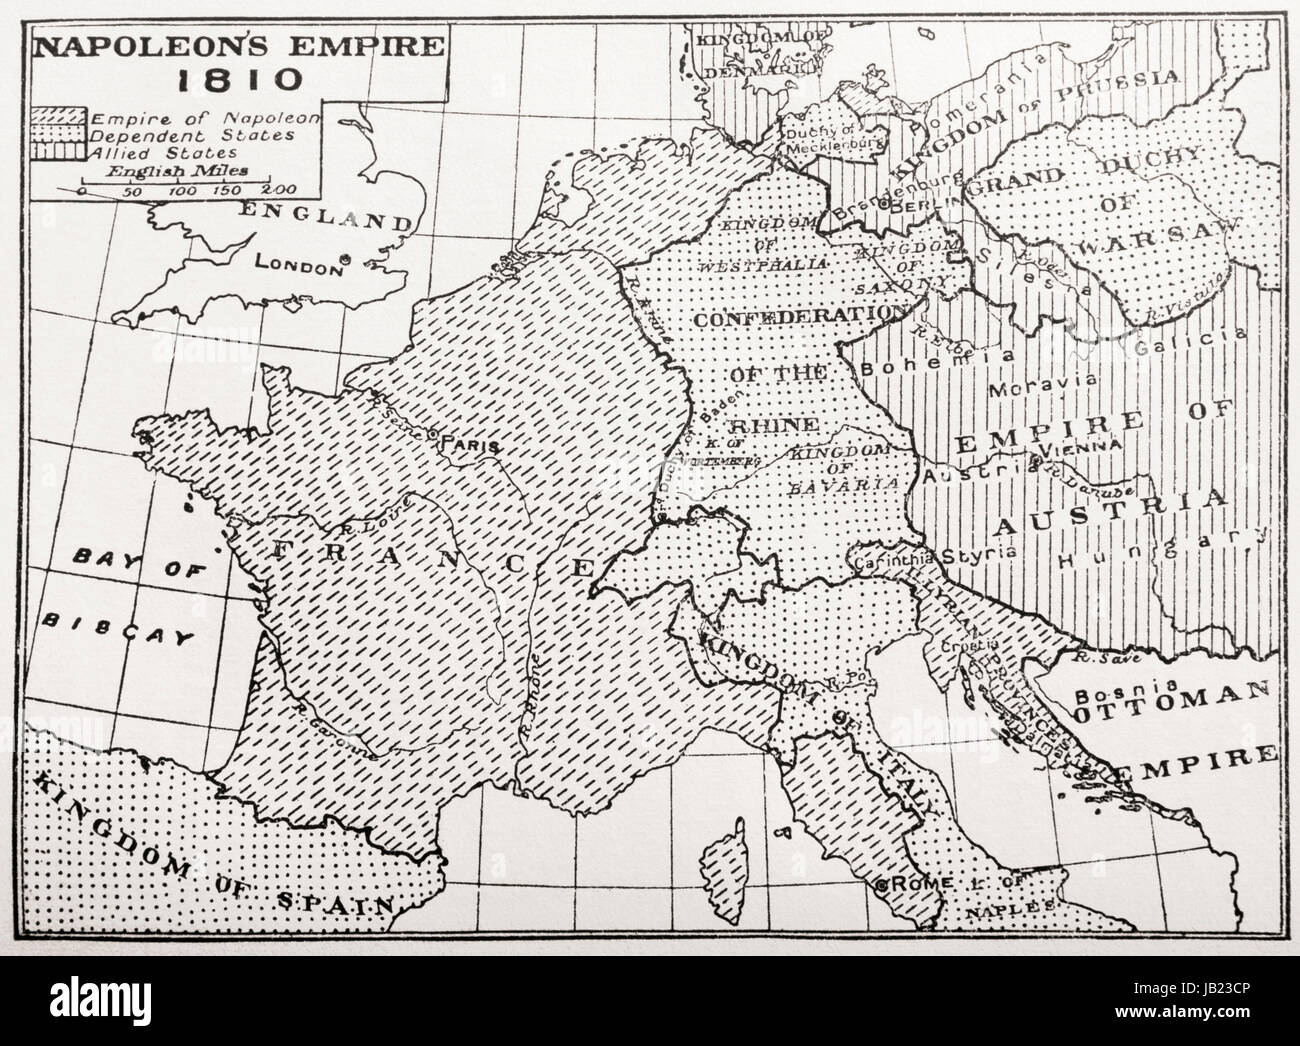 Map showing Napoleon's Empire, France, 1810.  From France, Mediaeval and Modern A History, published 1918. - Stock Image